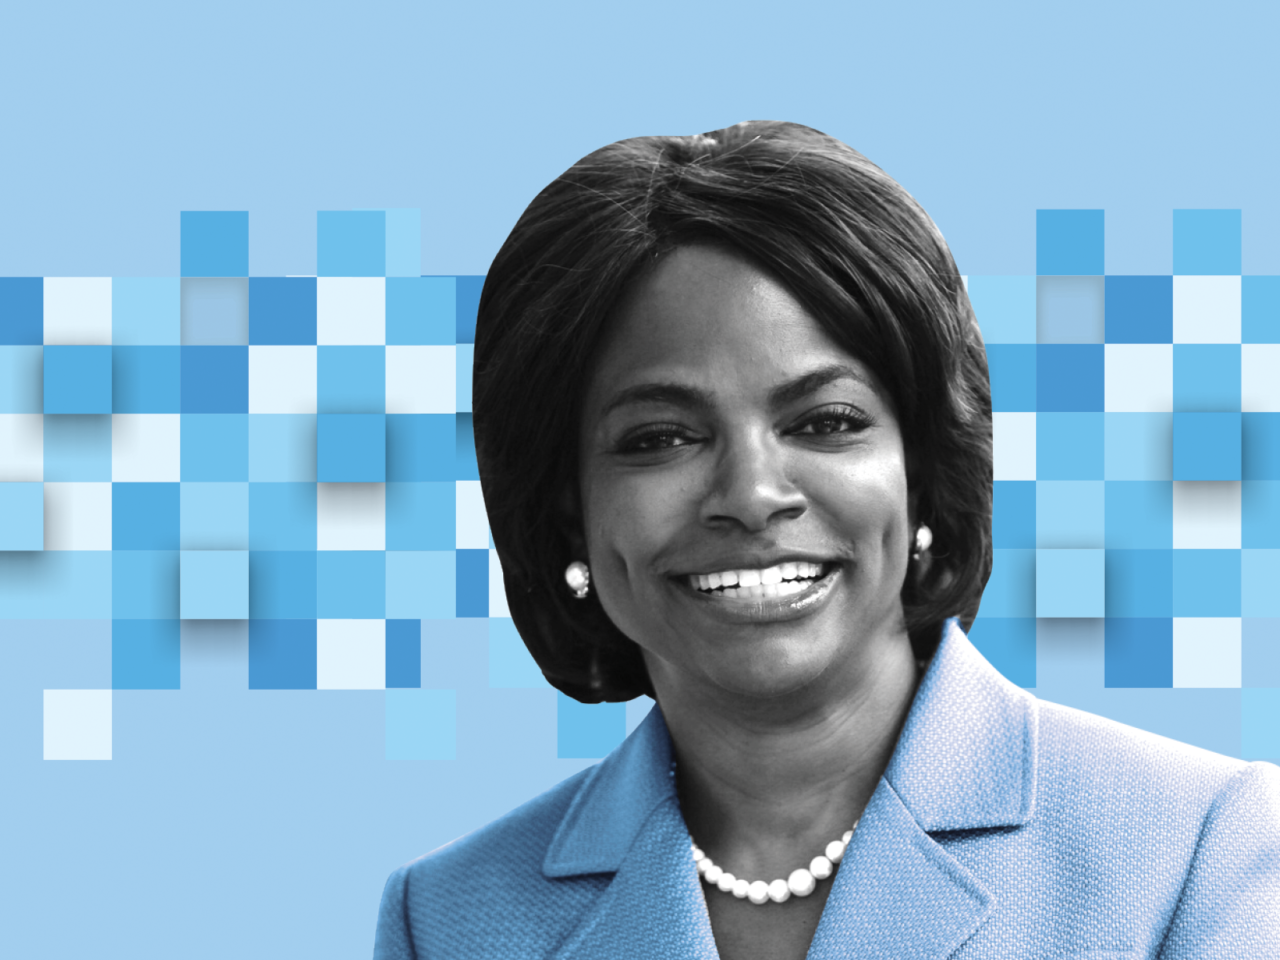 demings-val-graphic1-1-1280x960.png